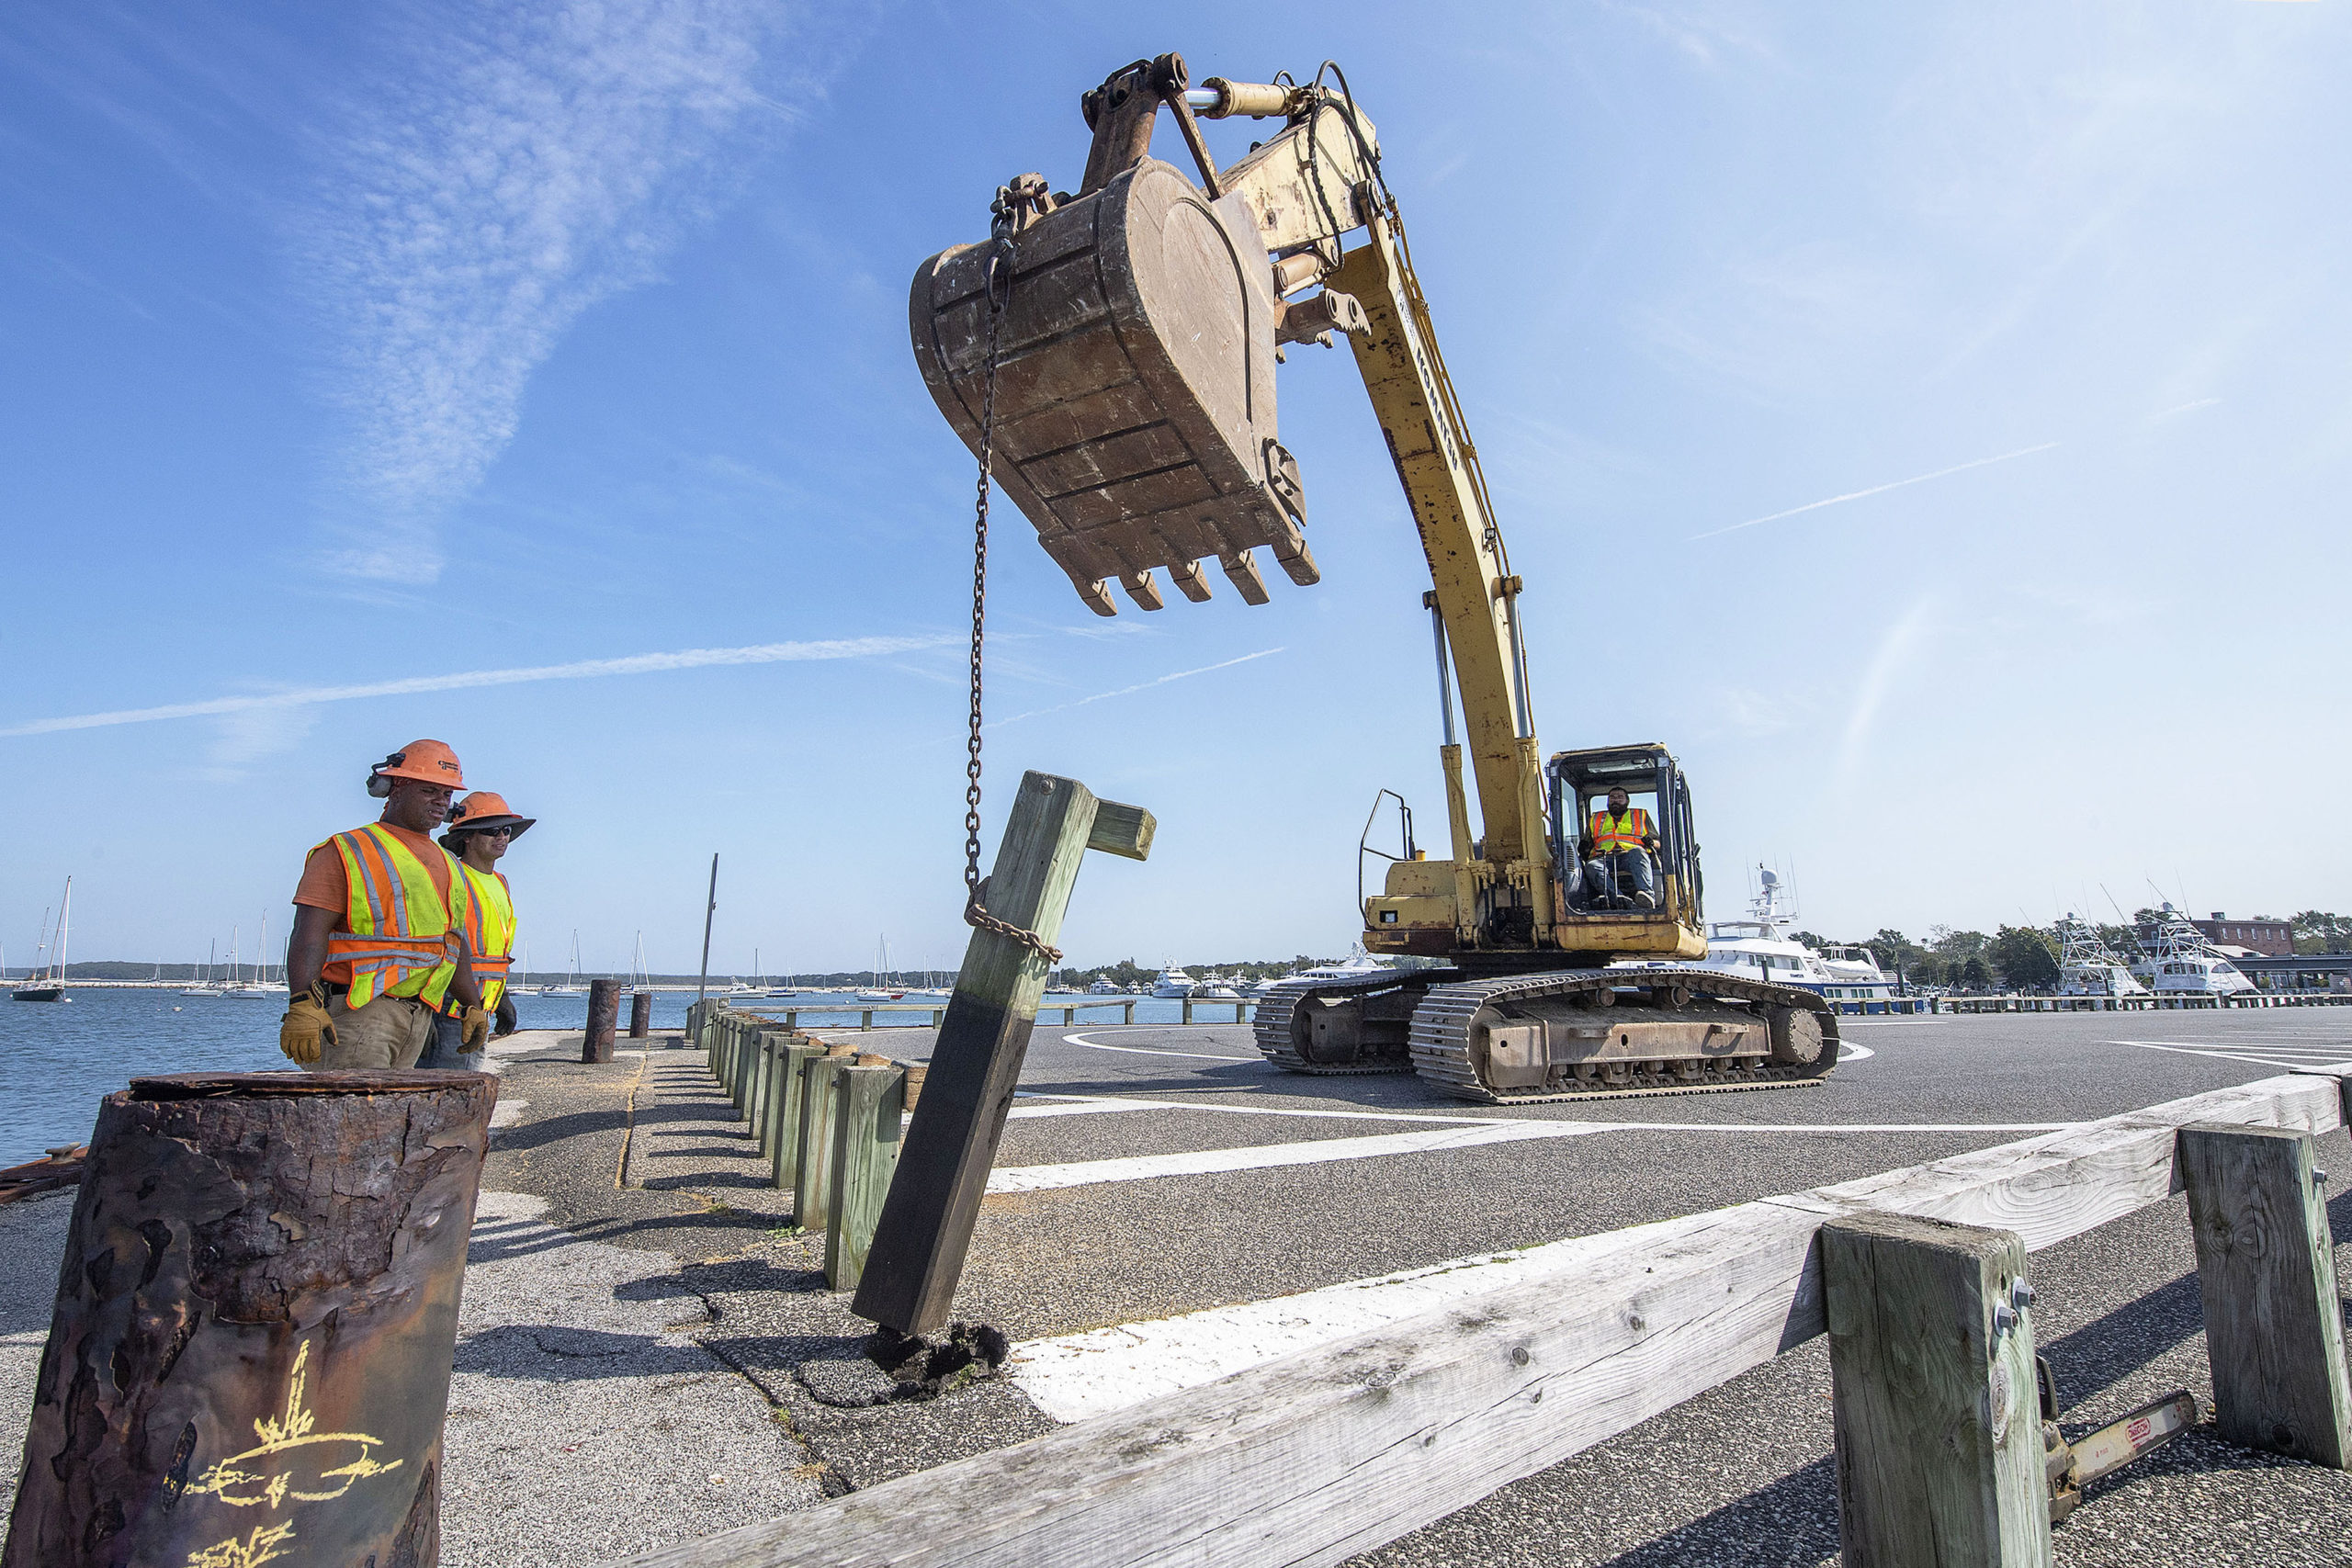 Work, which began last fall on Sag Harbor's Long Wharf, is nearing complettion. MICHAEL HELLER